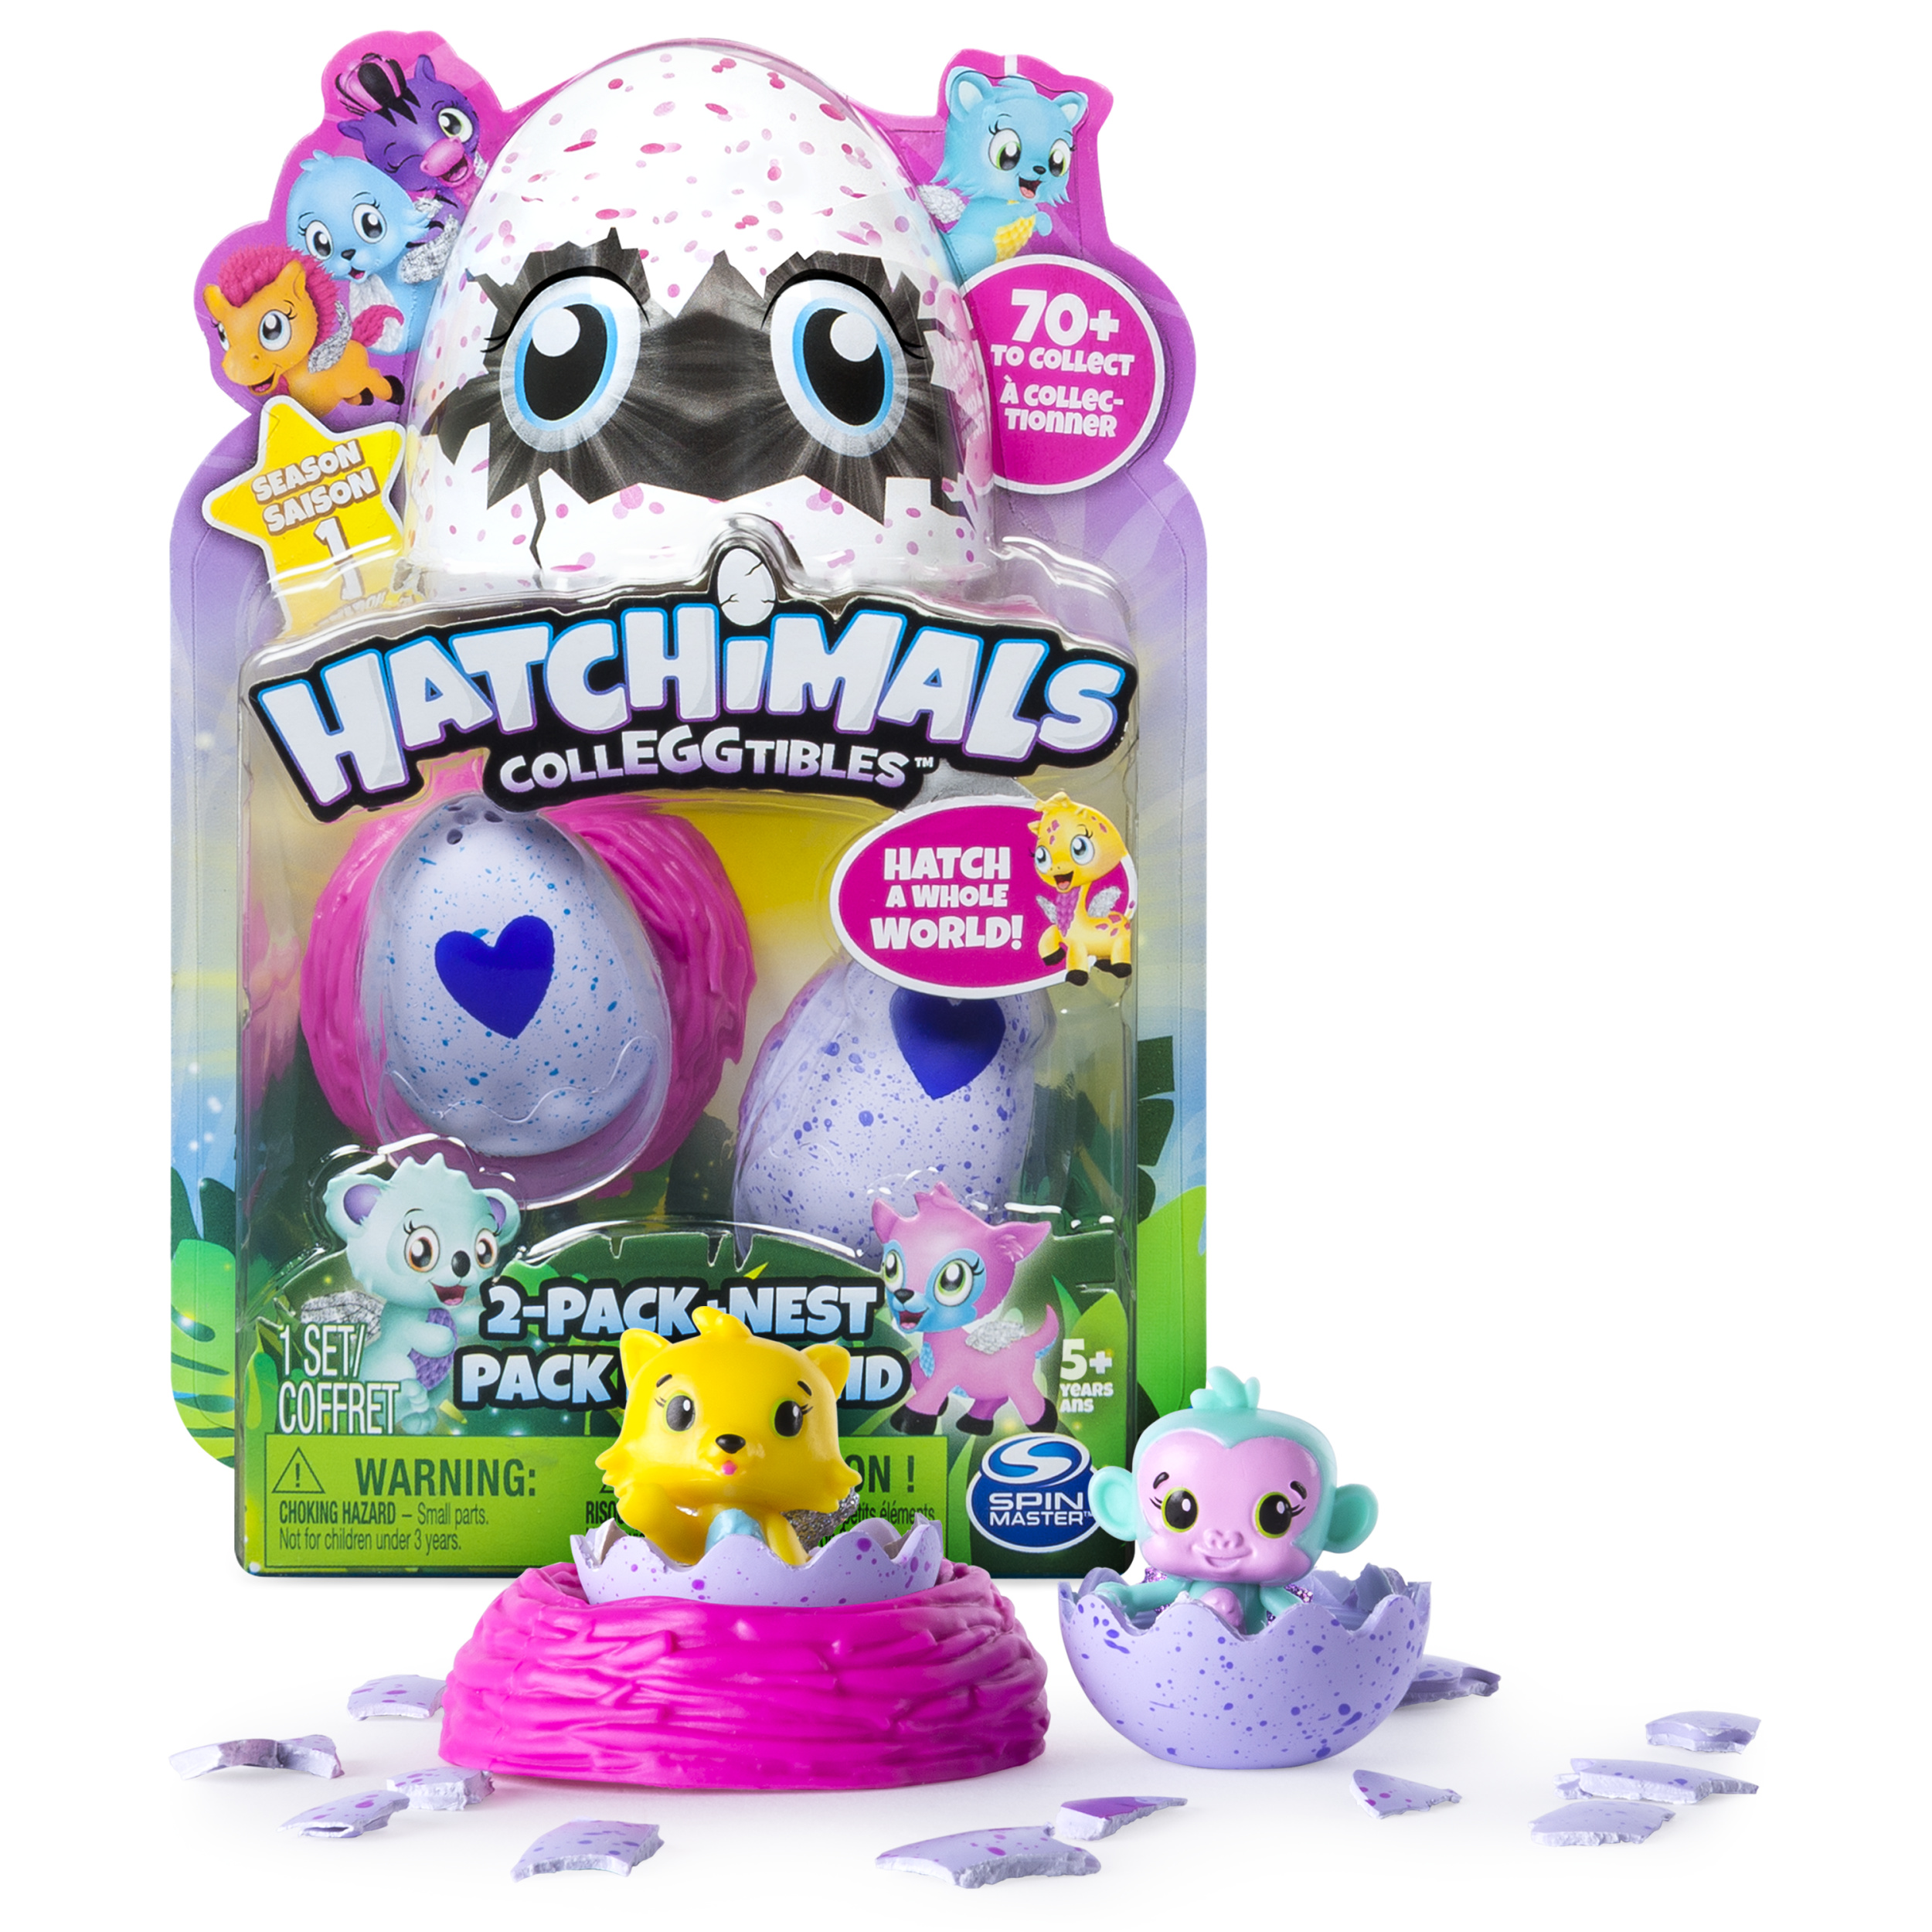 Hatchimals, CollEGGtibles, 2Pack + Nest (Styles & Colors May Vary) by Spin Master